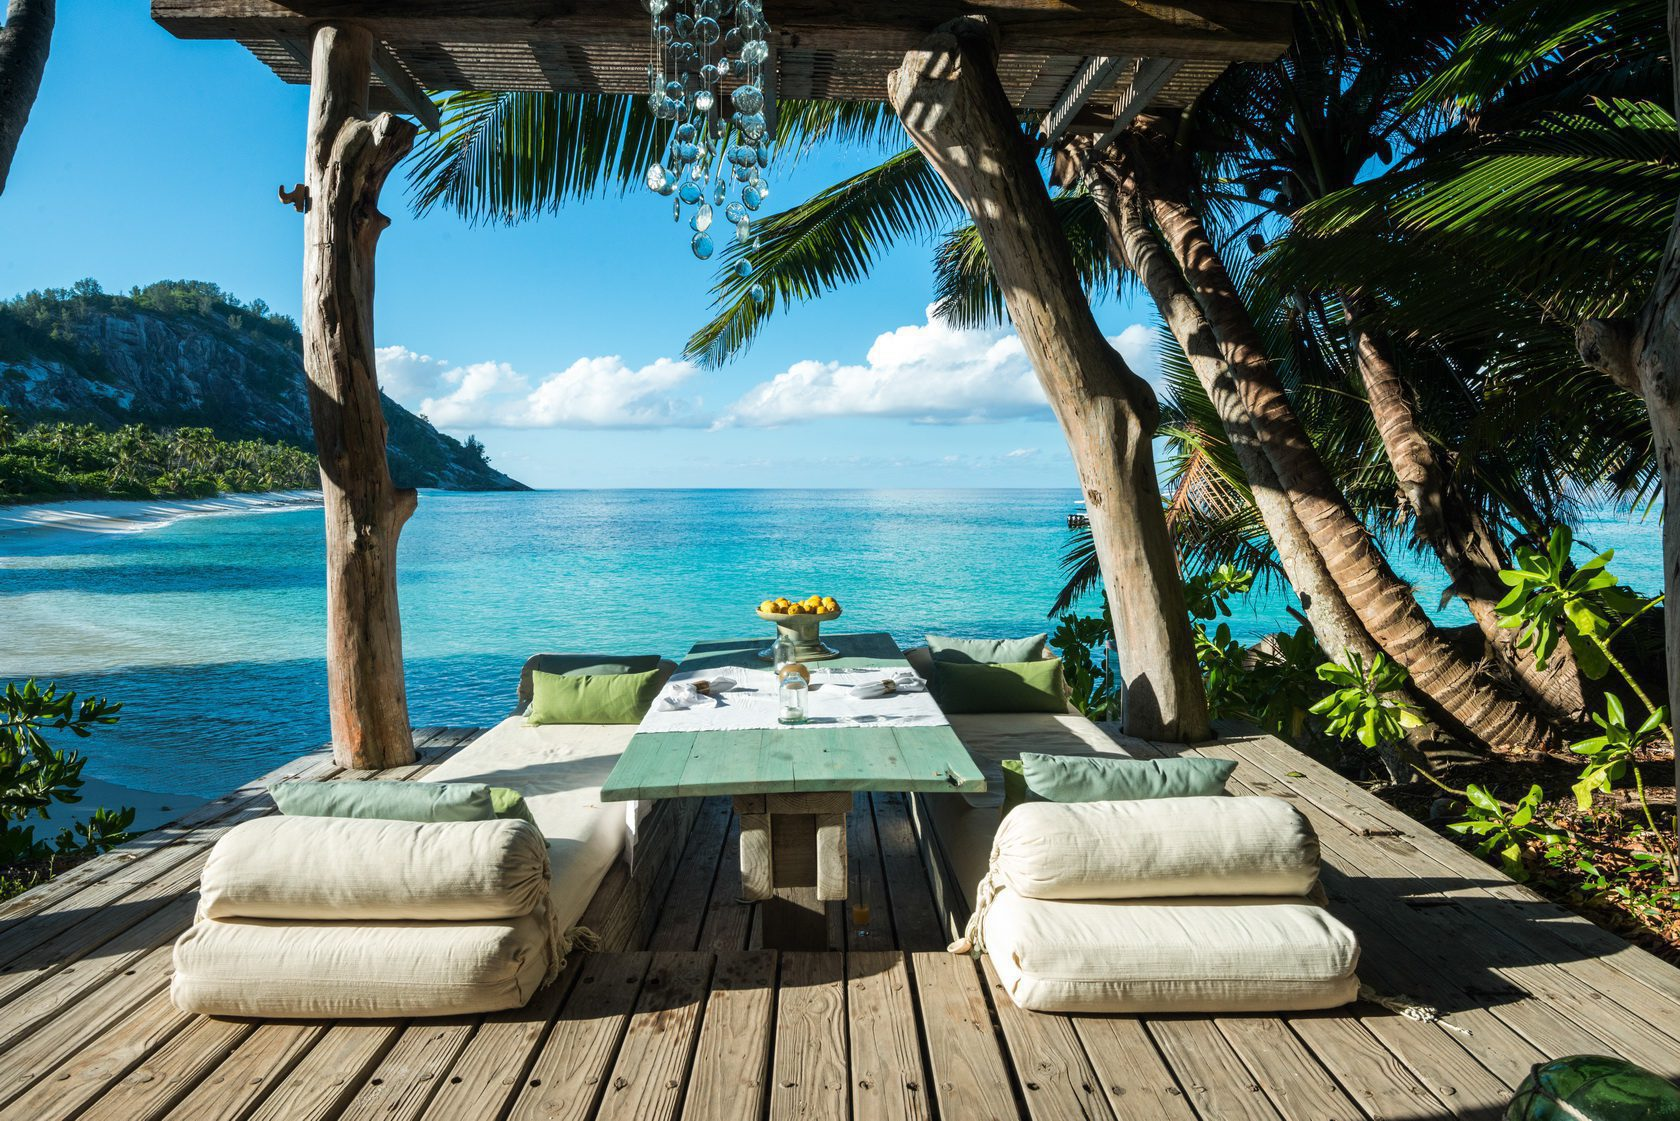 private deck off room looking at water in seychelles